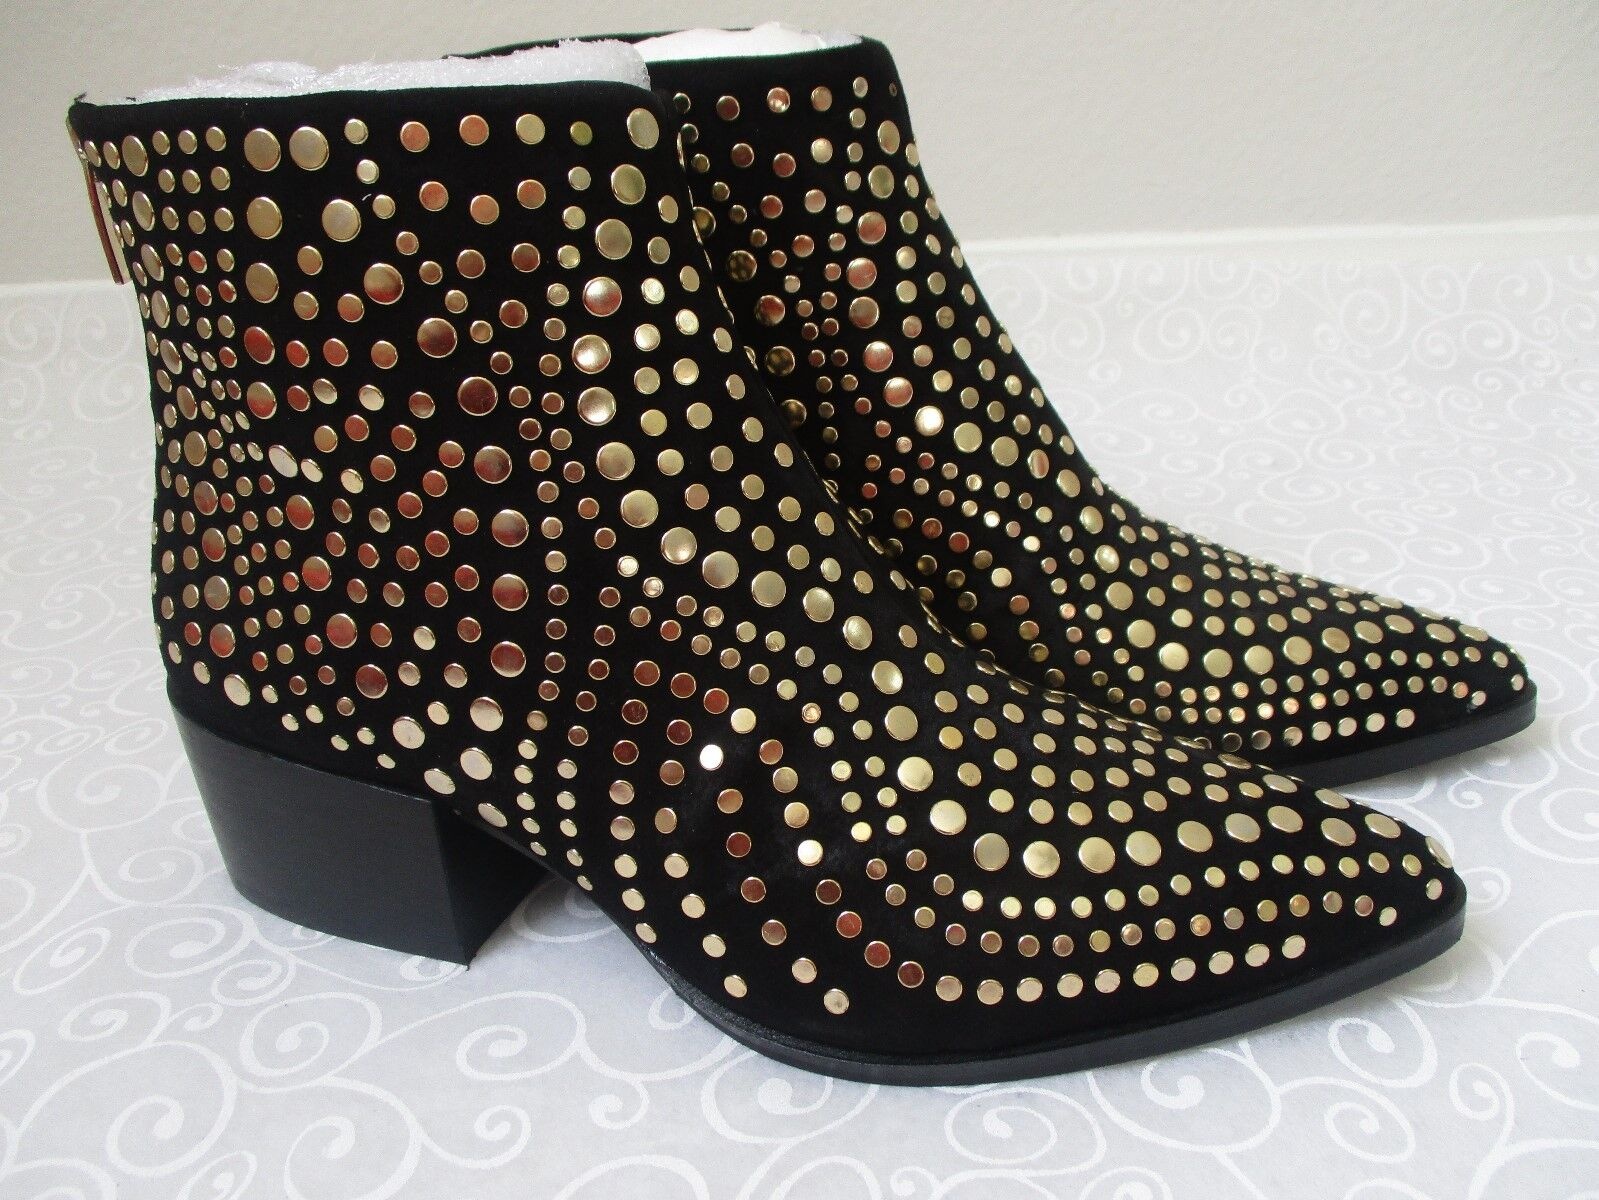 VINCE CAMUTO EDDENY BLACK LEATHER STUDDED ANKLE BOOTS SIZE 7 1 2 M - NEW